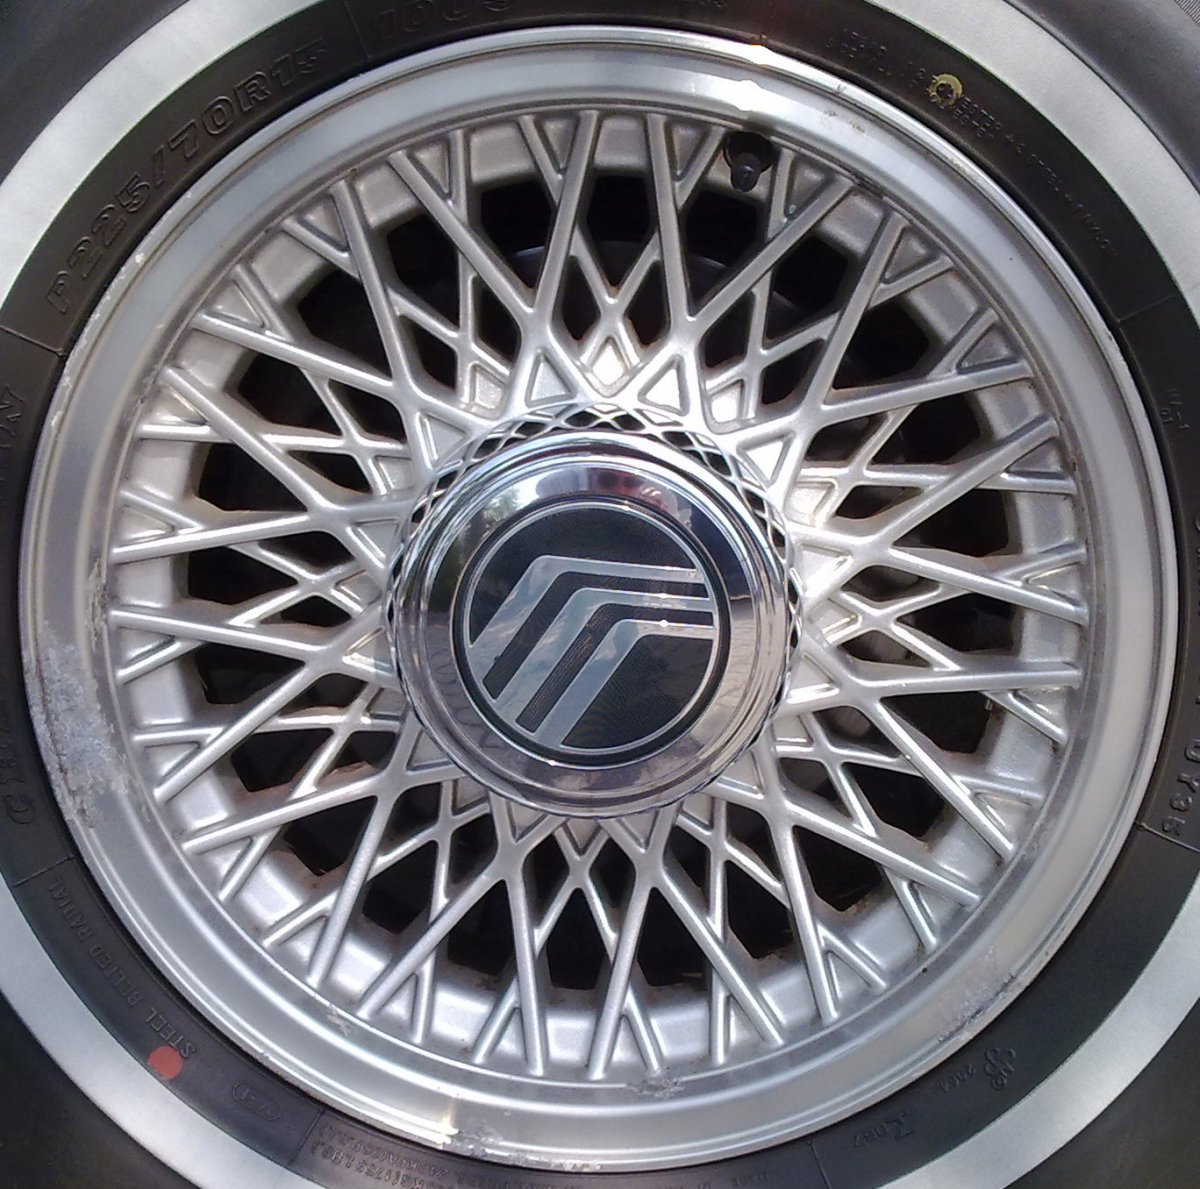 Alloy_wheel_mercury.jpg